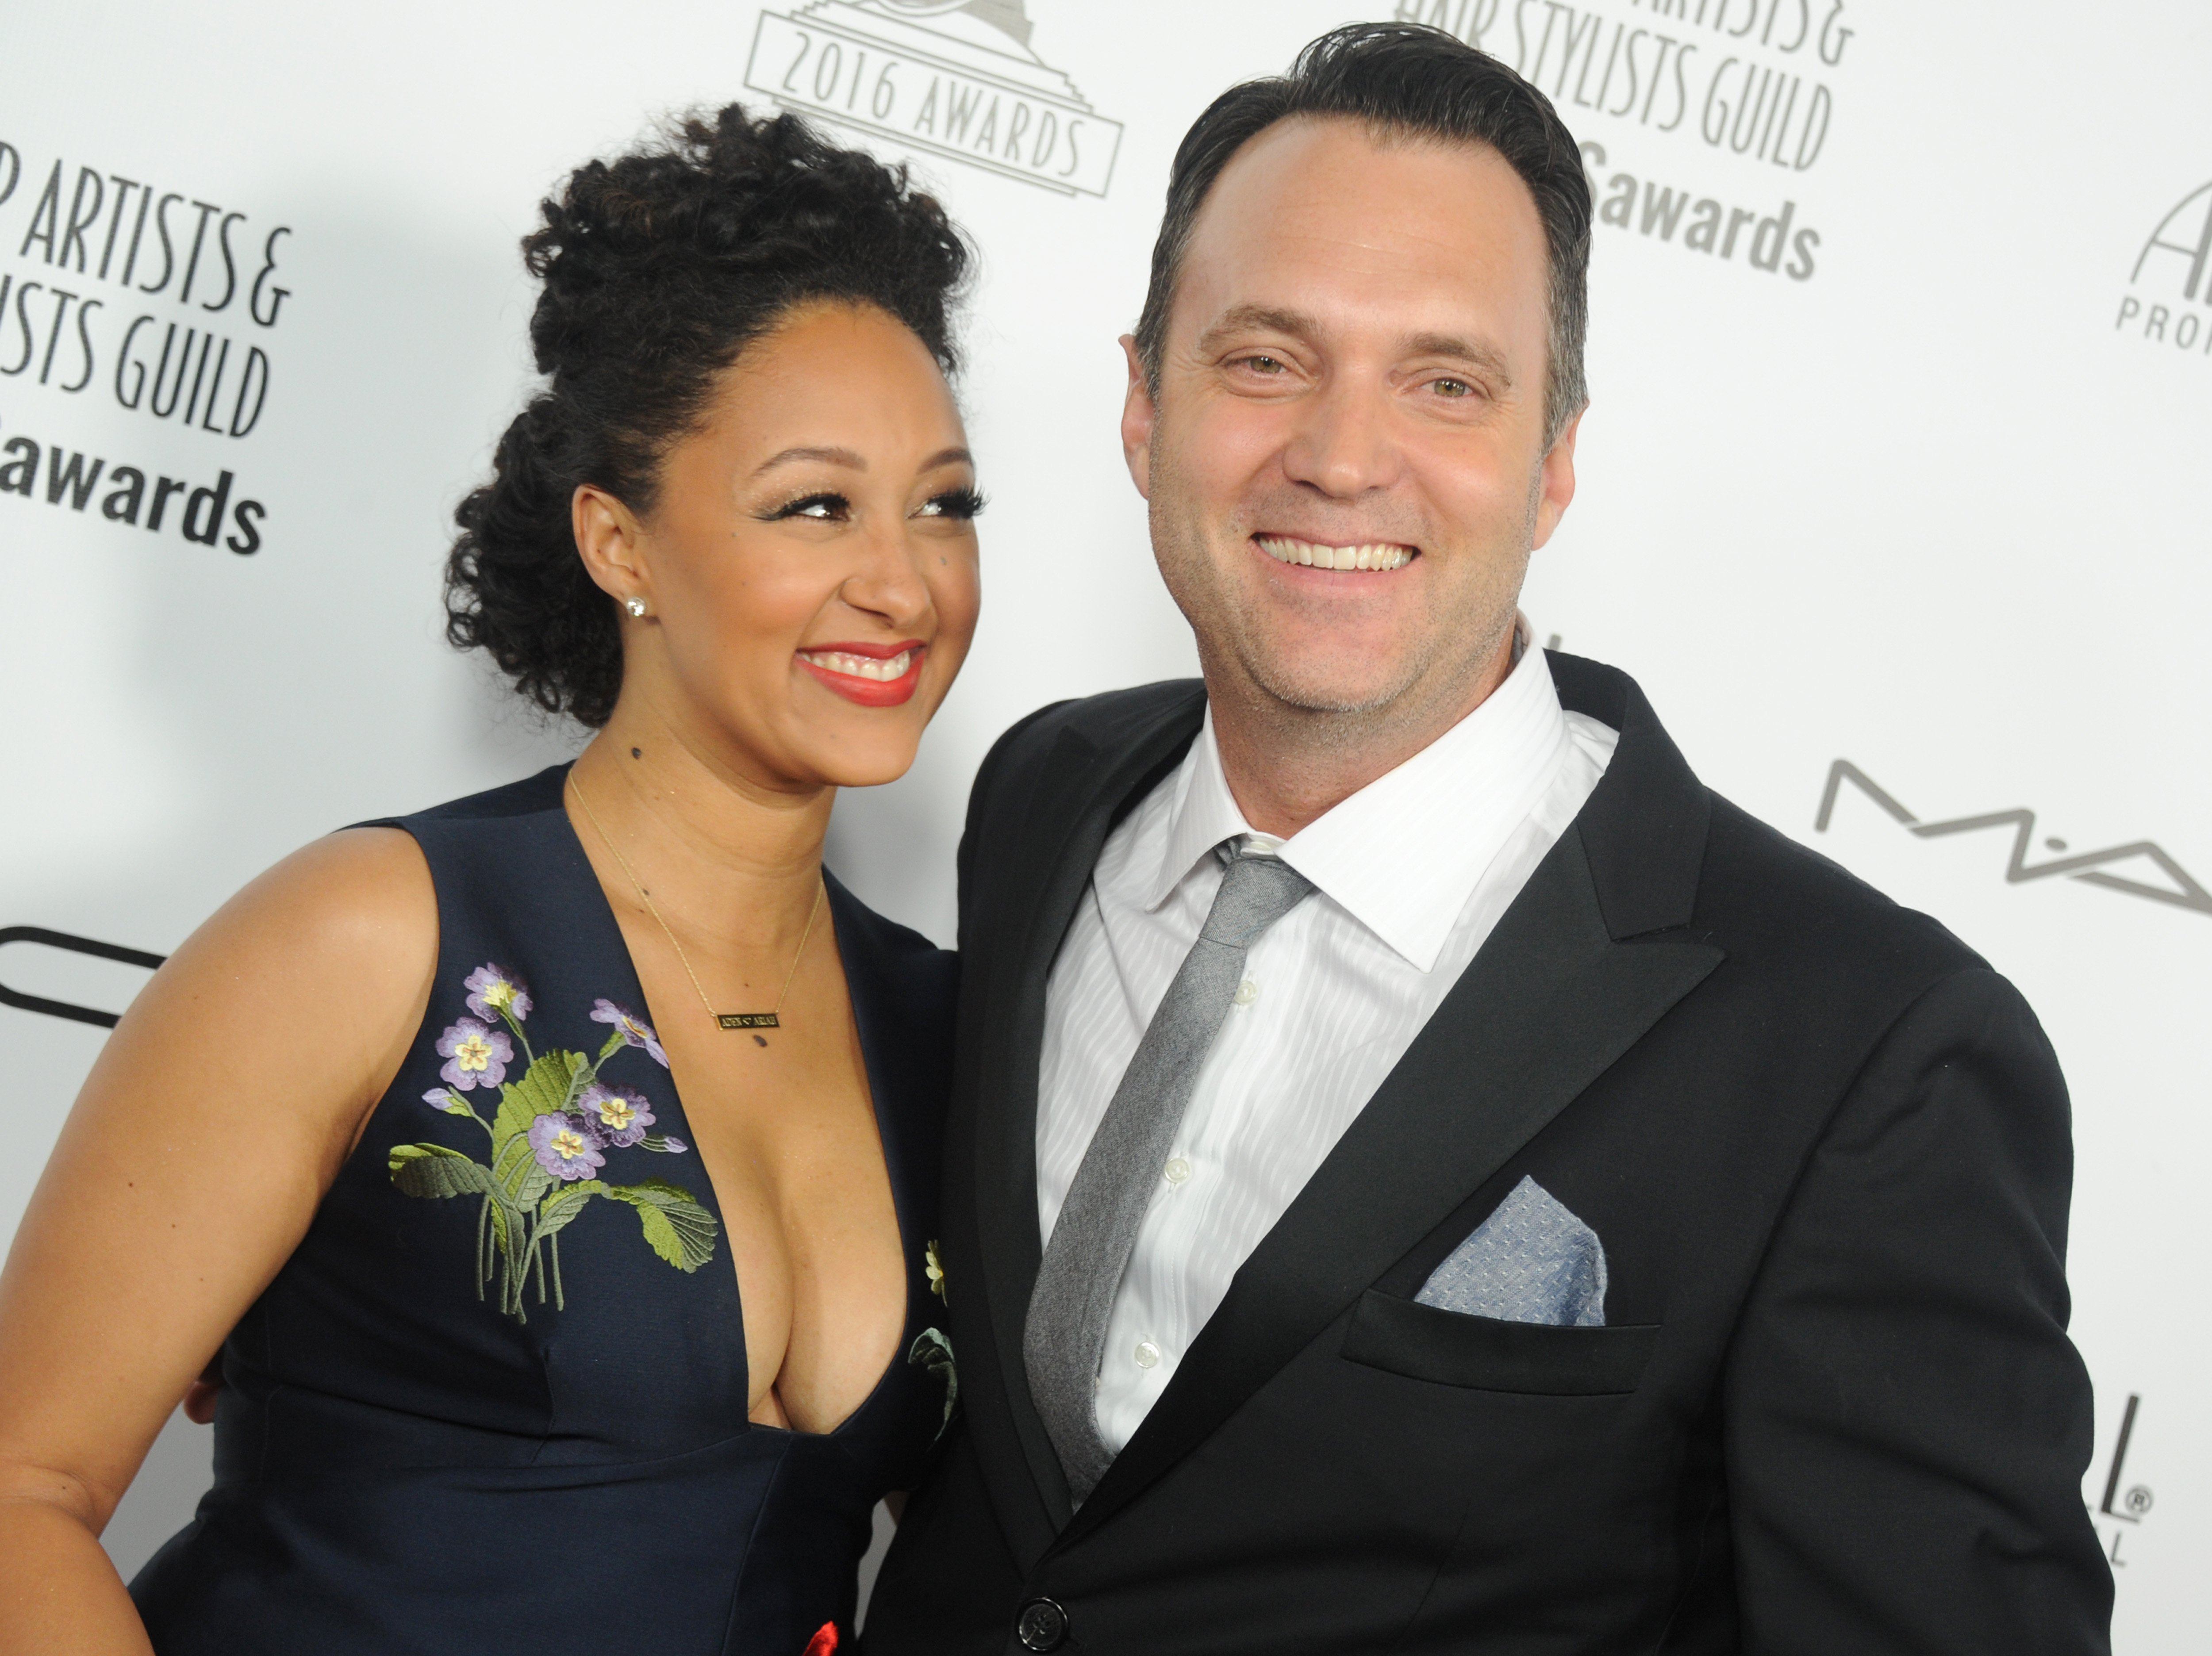 Tamera Mowry-Housley and Adam Housley at the Make-Up Artists And Hair Stylists Guild Awards at Paramount Studios on February 20, 2016 in Hollywood, California.  Source: Getty Images